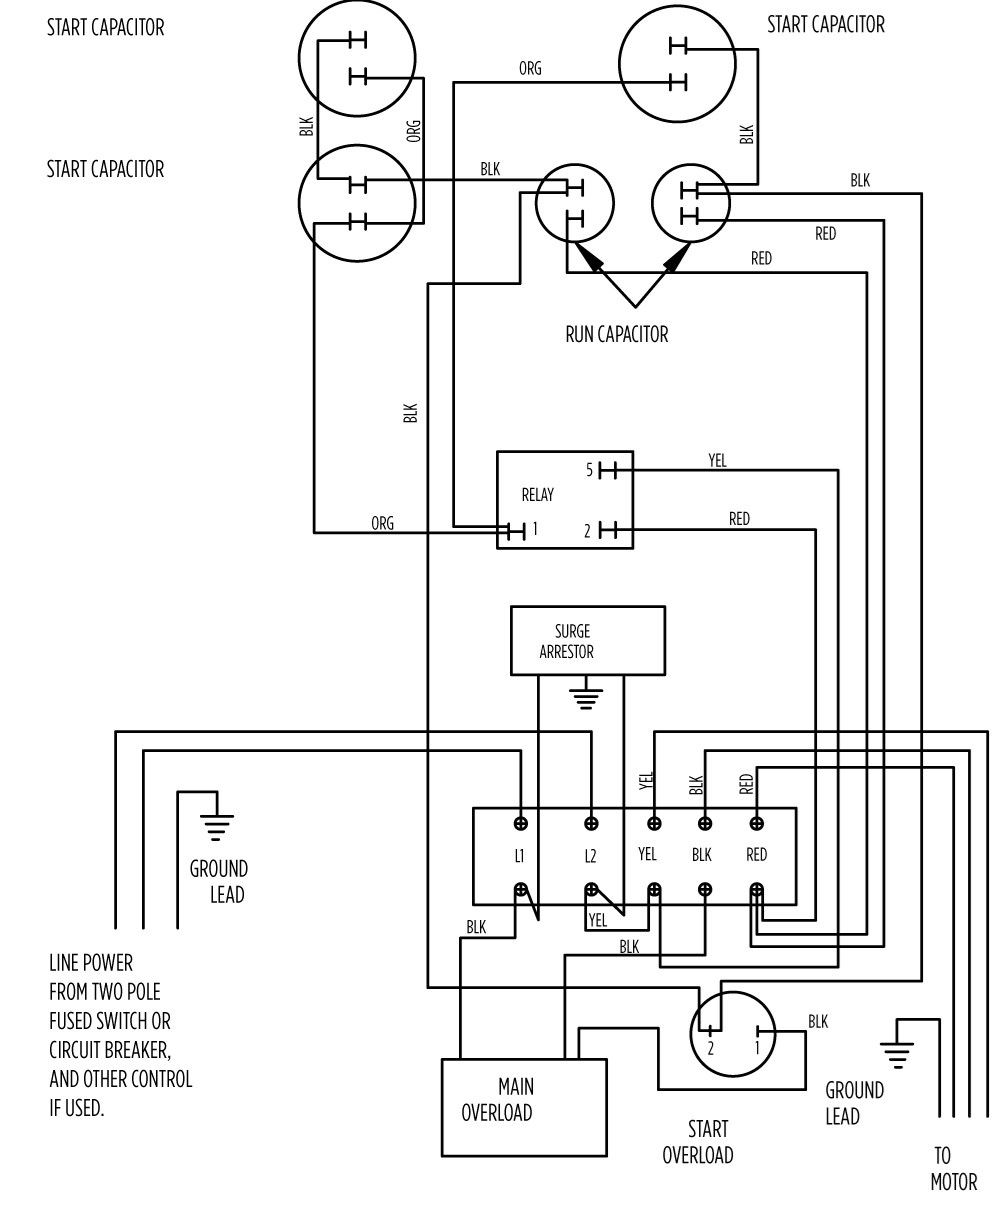 Aim Manual Page 57 Single Phase Motors And Controls Motor 2 Hp Wiring 10 Standard 282 202 9210 Or 9230